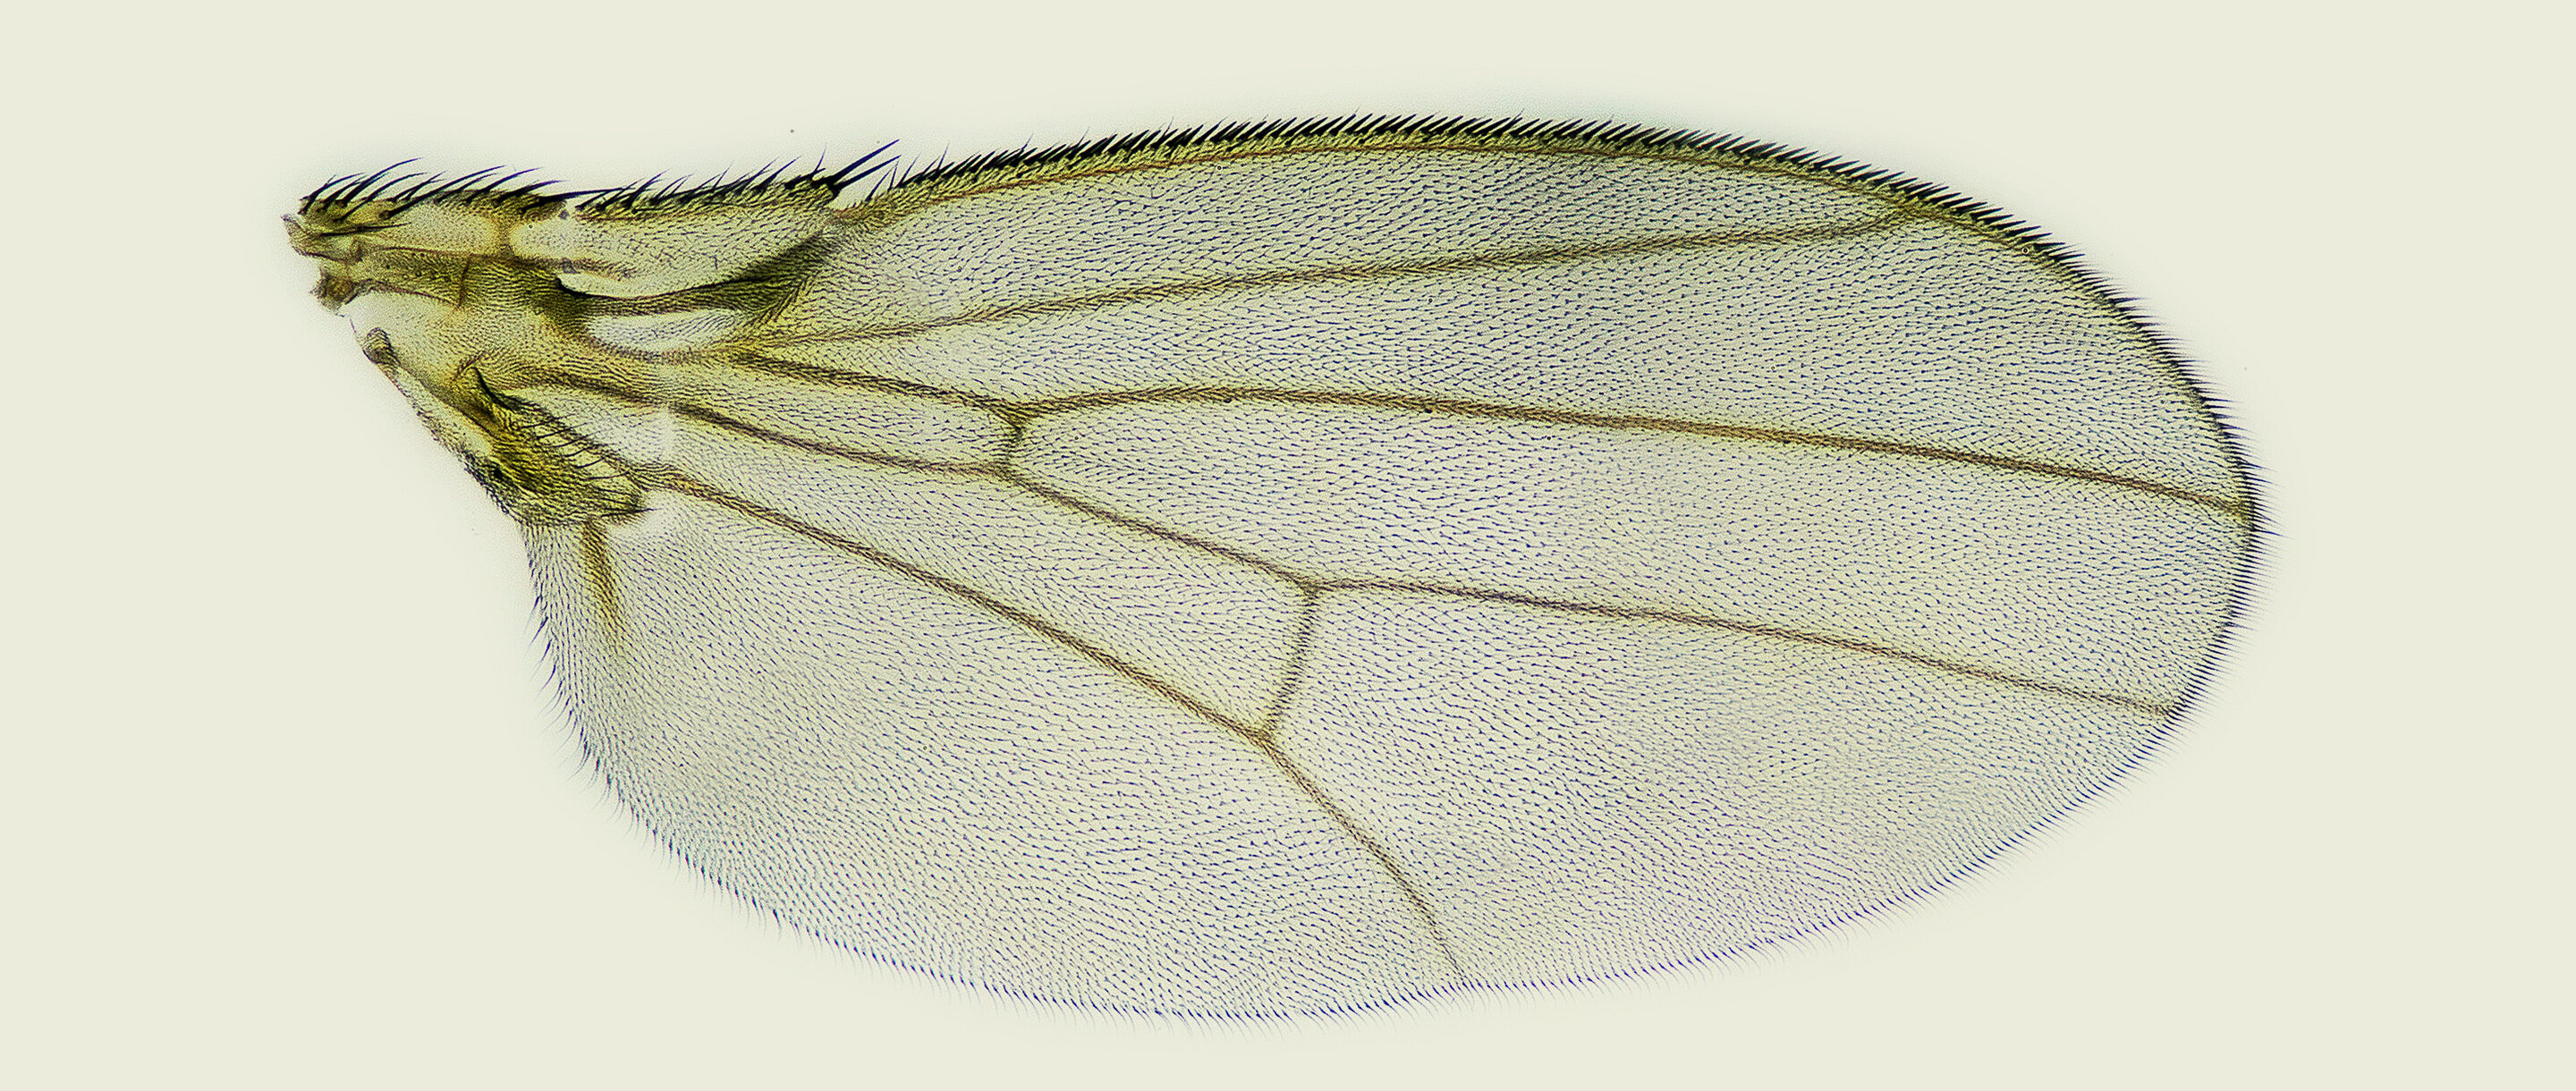 A detailed photo of a fruit fly wing in silhouette.